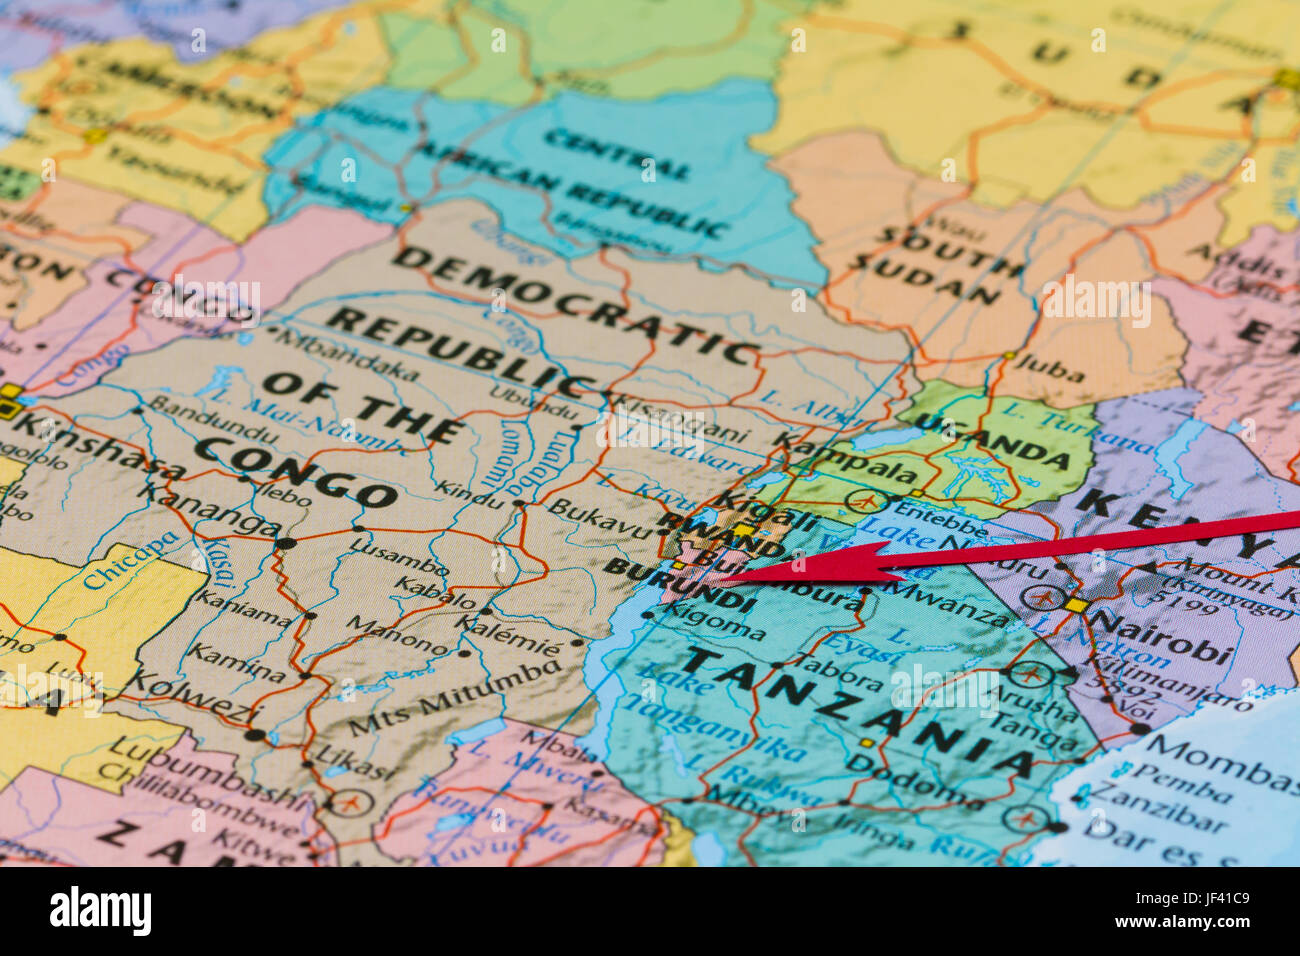 Photo of Burundi. Country indicated by red arrow. Country on African continent. - Stock Image